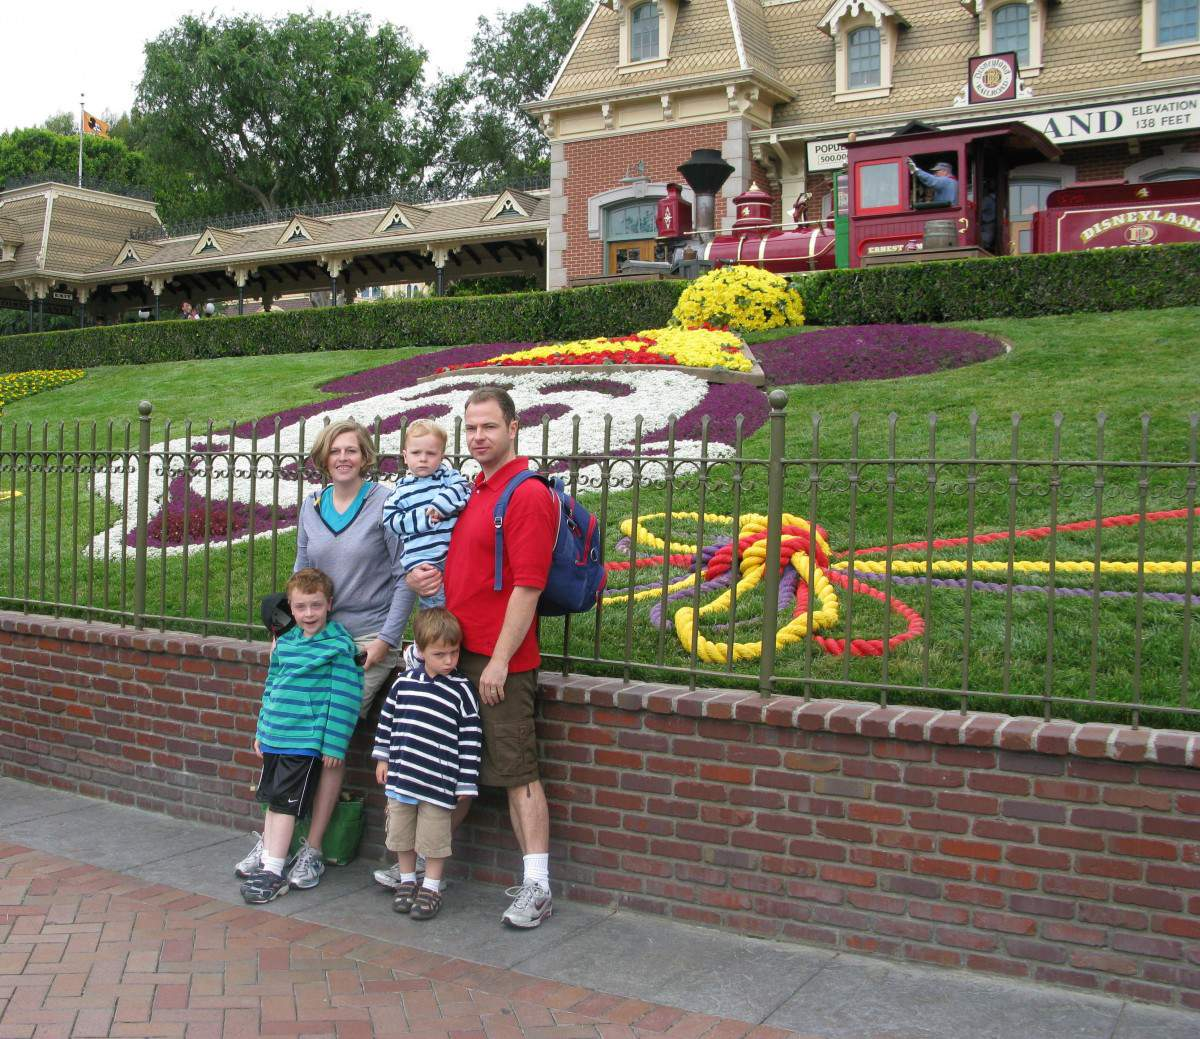 California Trip Ideas Disneyland-Kids Are A Trip